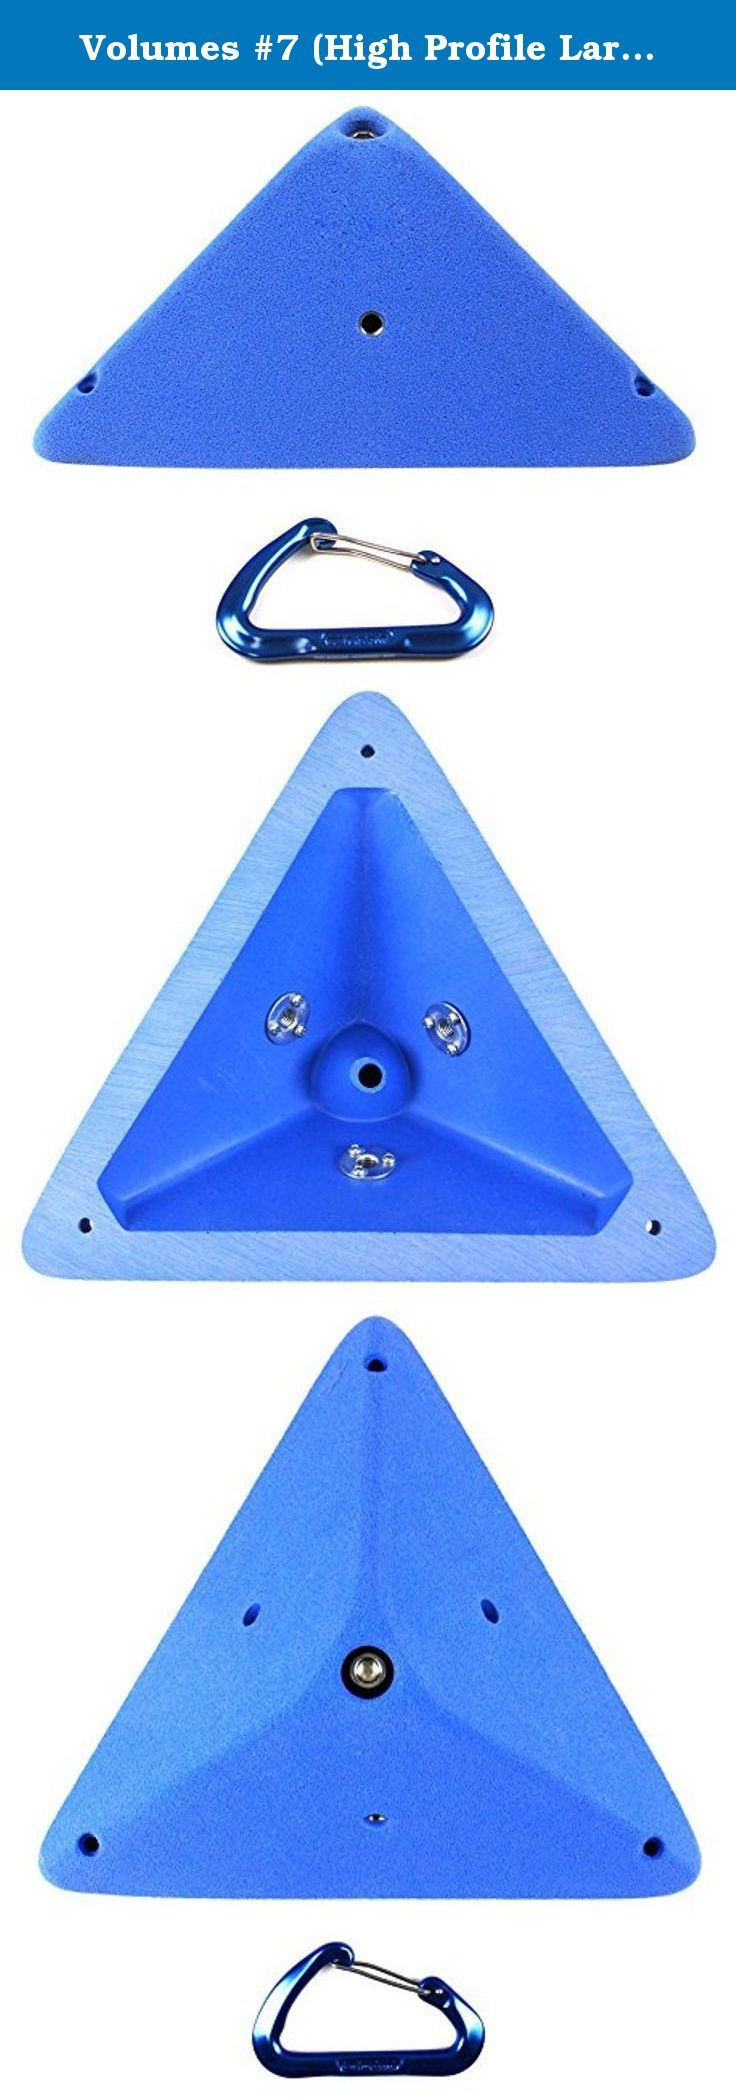 "Volumes #7 (High Profile Large Surface Triangle) | Climbing Holds | Blue. Volume #7 Large enough surface area to bolt large and extra large holds on to it yest small enough to stack on big volumes like the wood ones Motavation manufacture. Base Dimensions : 11 1/2"" x 12"" x 11 1/2"" Stands out from the wall: 4 1/2"" T-nuts installed: 3 round base brad hole t-nuts. Attachment method : One single 3/8-16 Allan head bolt and/or 3 #8/#10 screws."